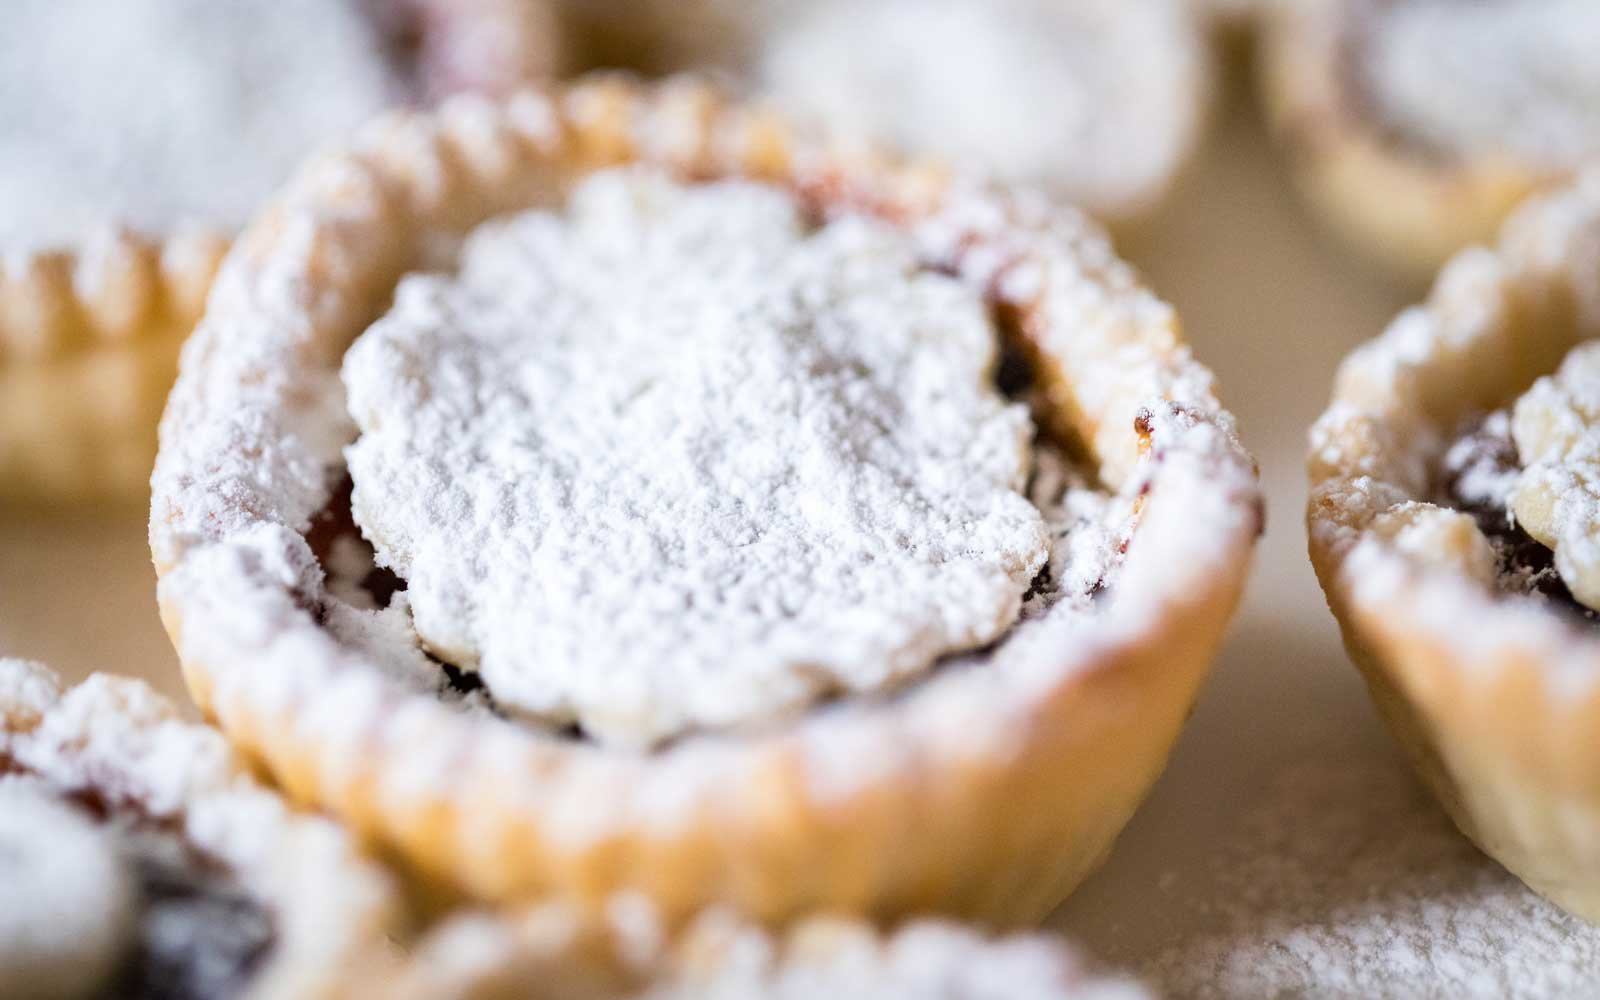 These miniature pies are typically made with fruit and chopped nuts and spices.